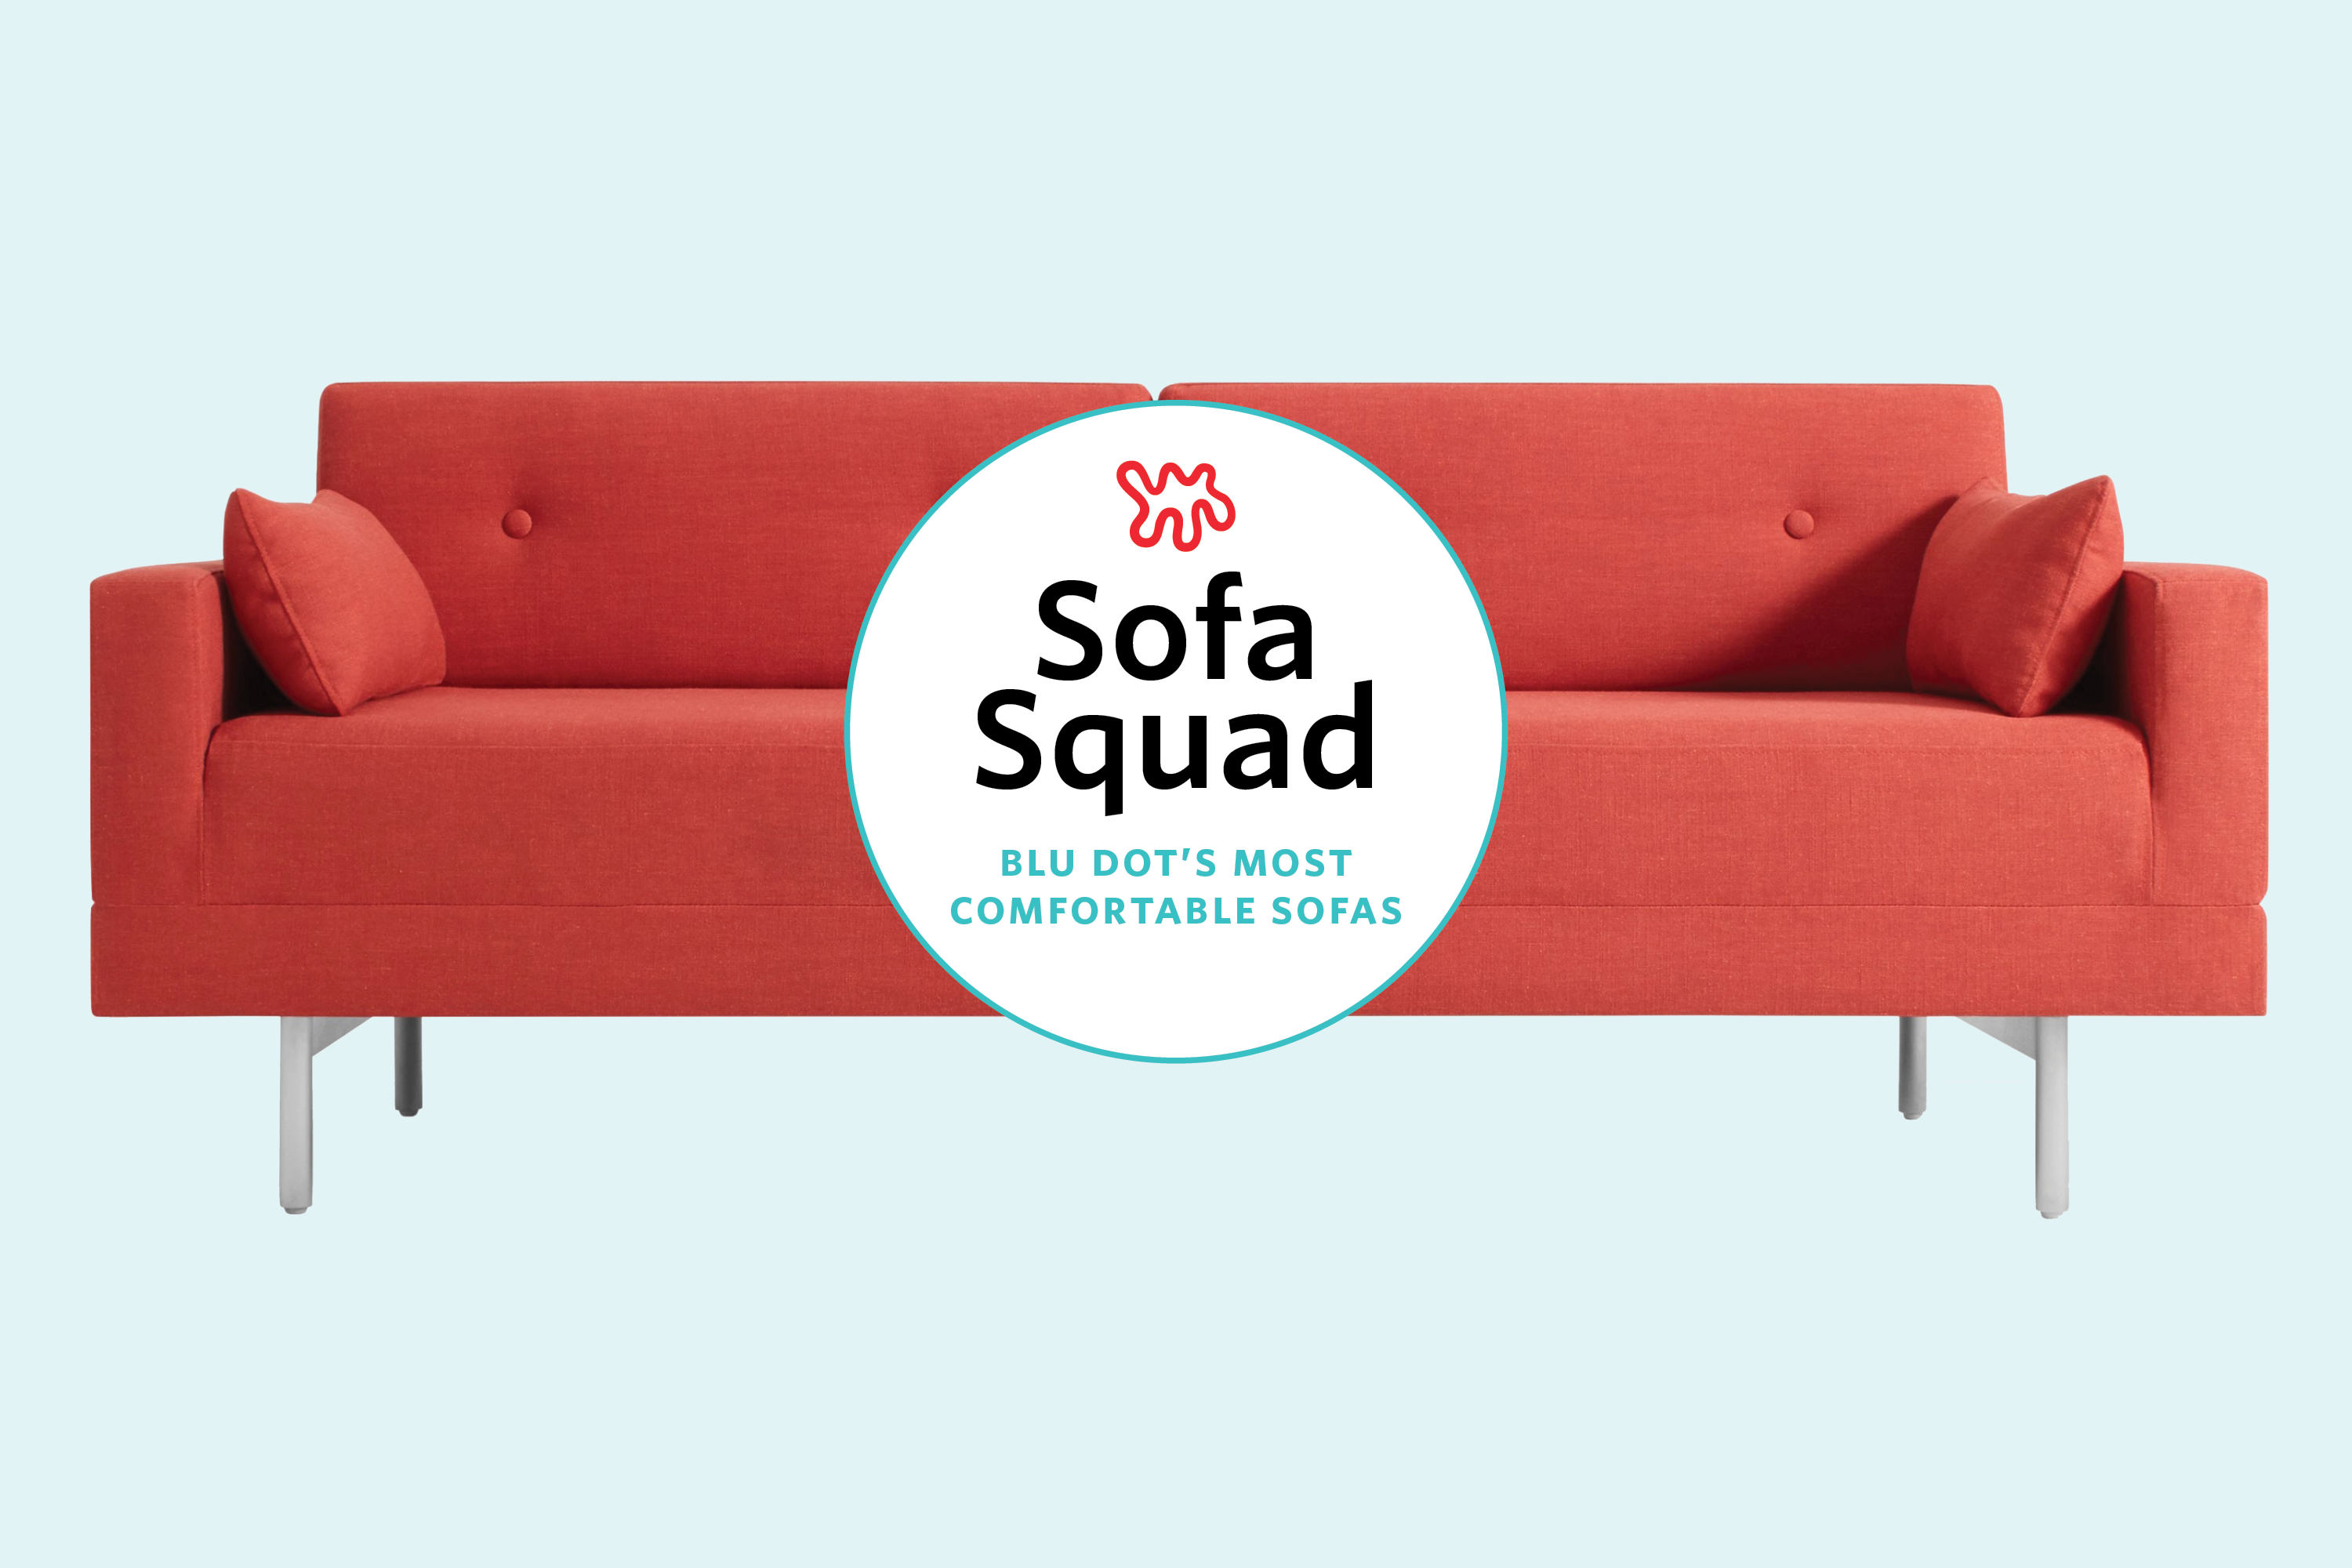 Most Comfortable Sofas At Blu Dot